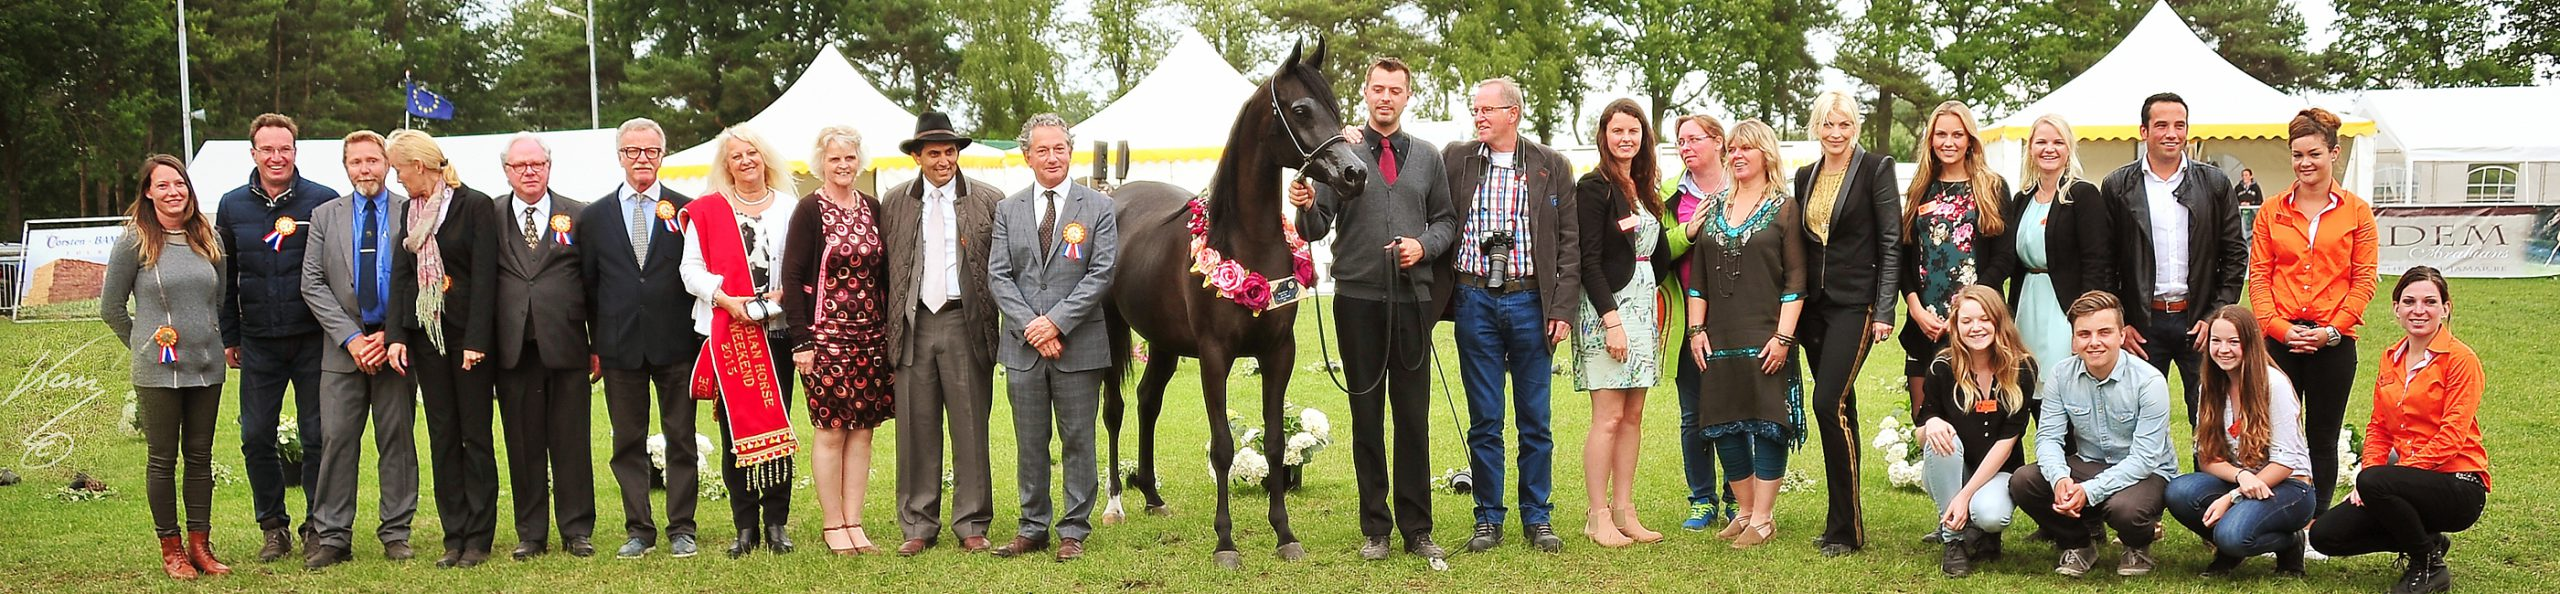 Best of show filly standing surrounded by the Jadem Arabians team